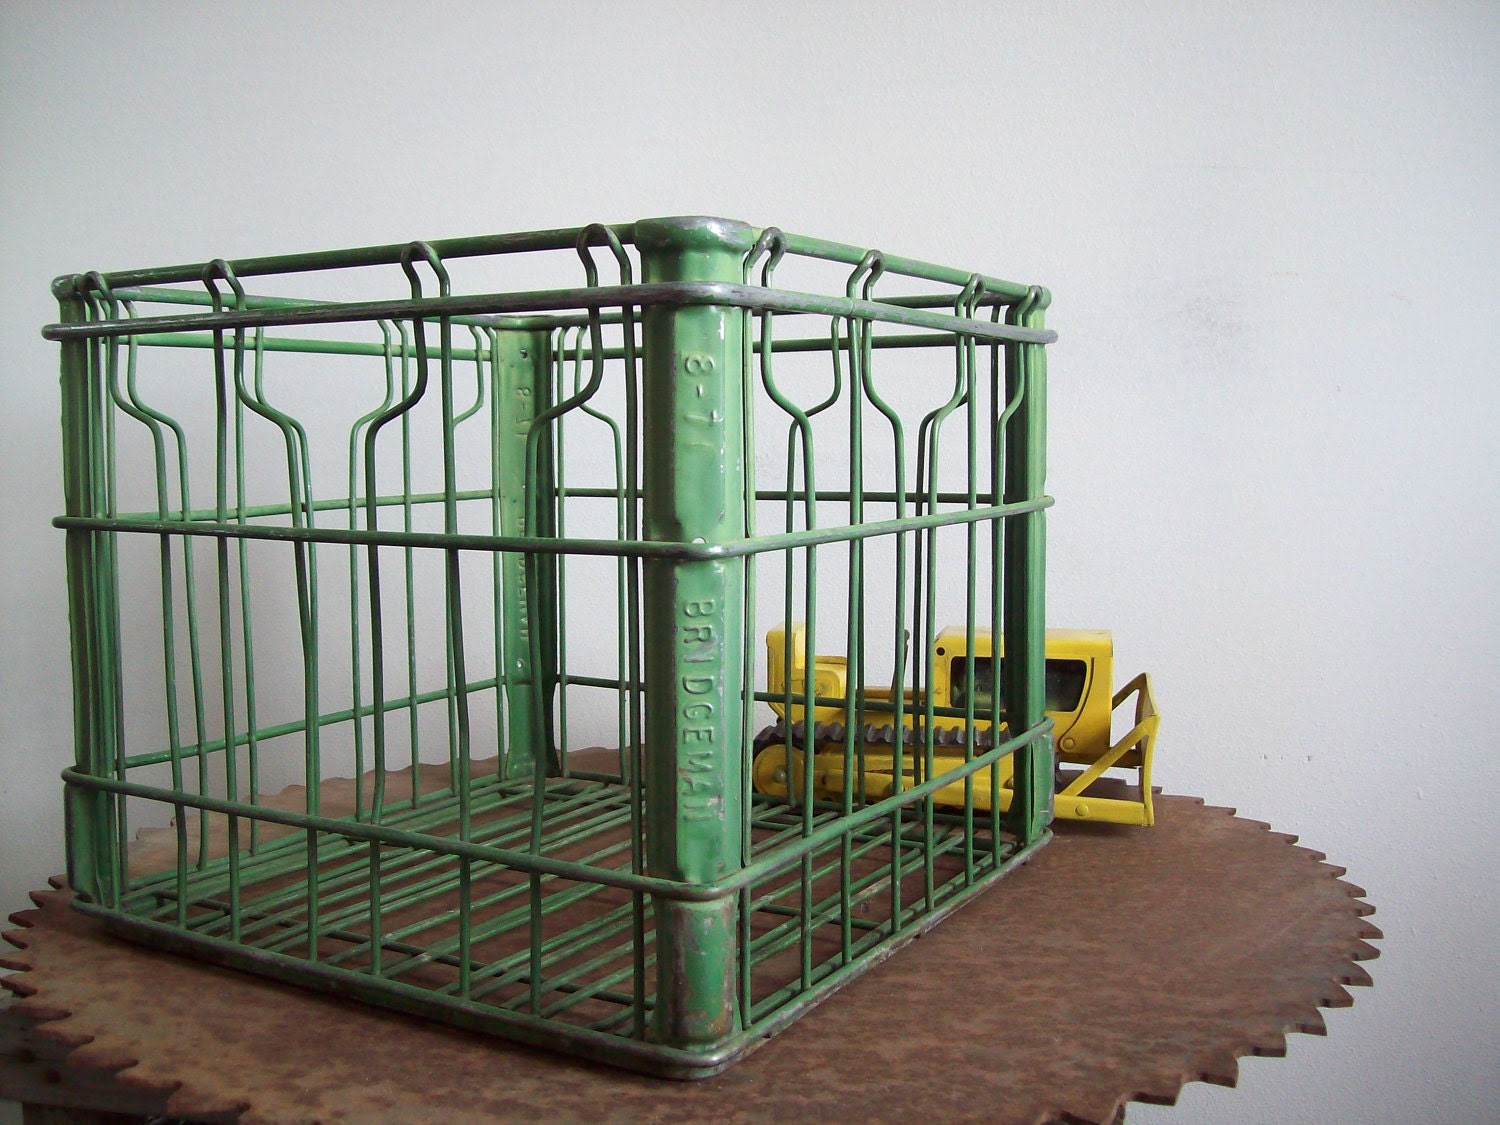 Vintage Bridgemans metal milk crate green original paint Free shipping to USA - LostTreeMan